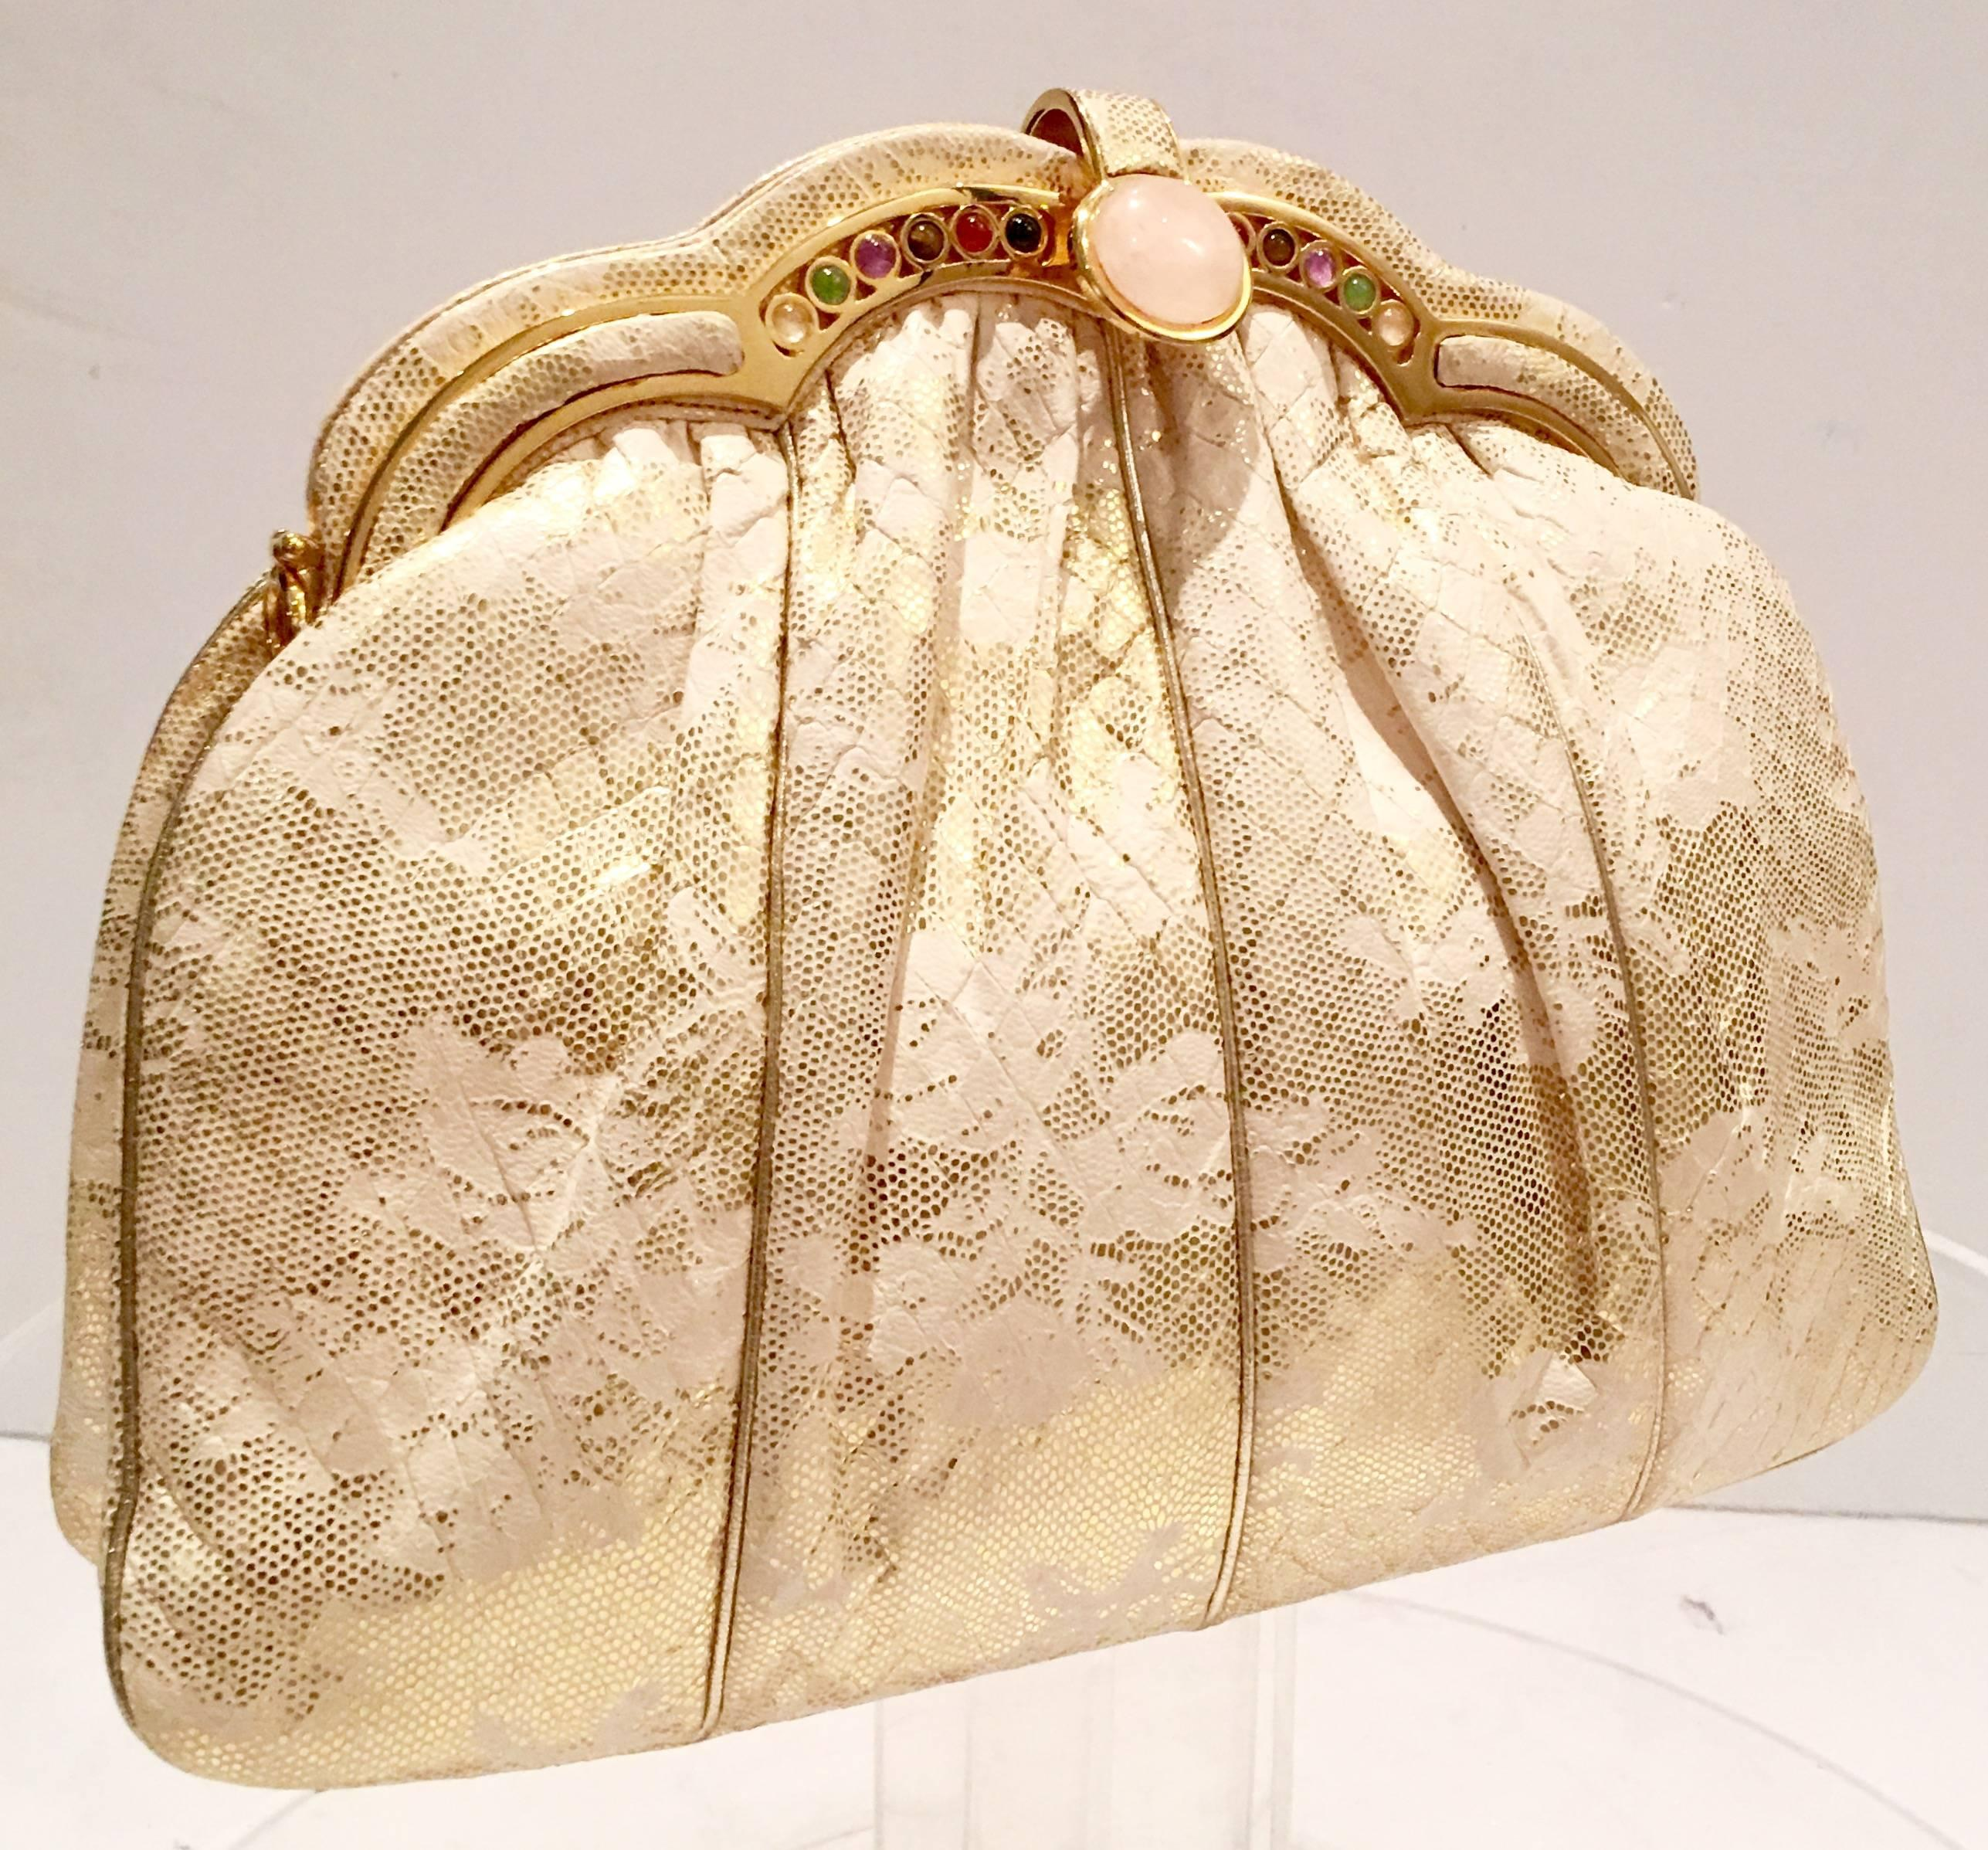 Judith Leiber Brushed Metal Evening Purse With Stone Details Optional Strap 5KGUfB